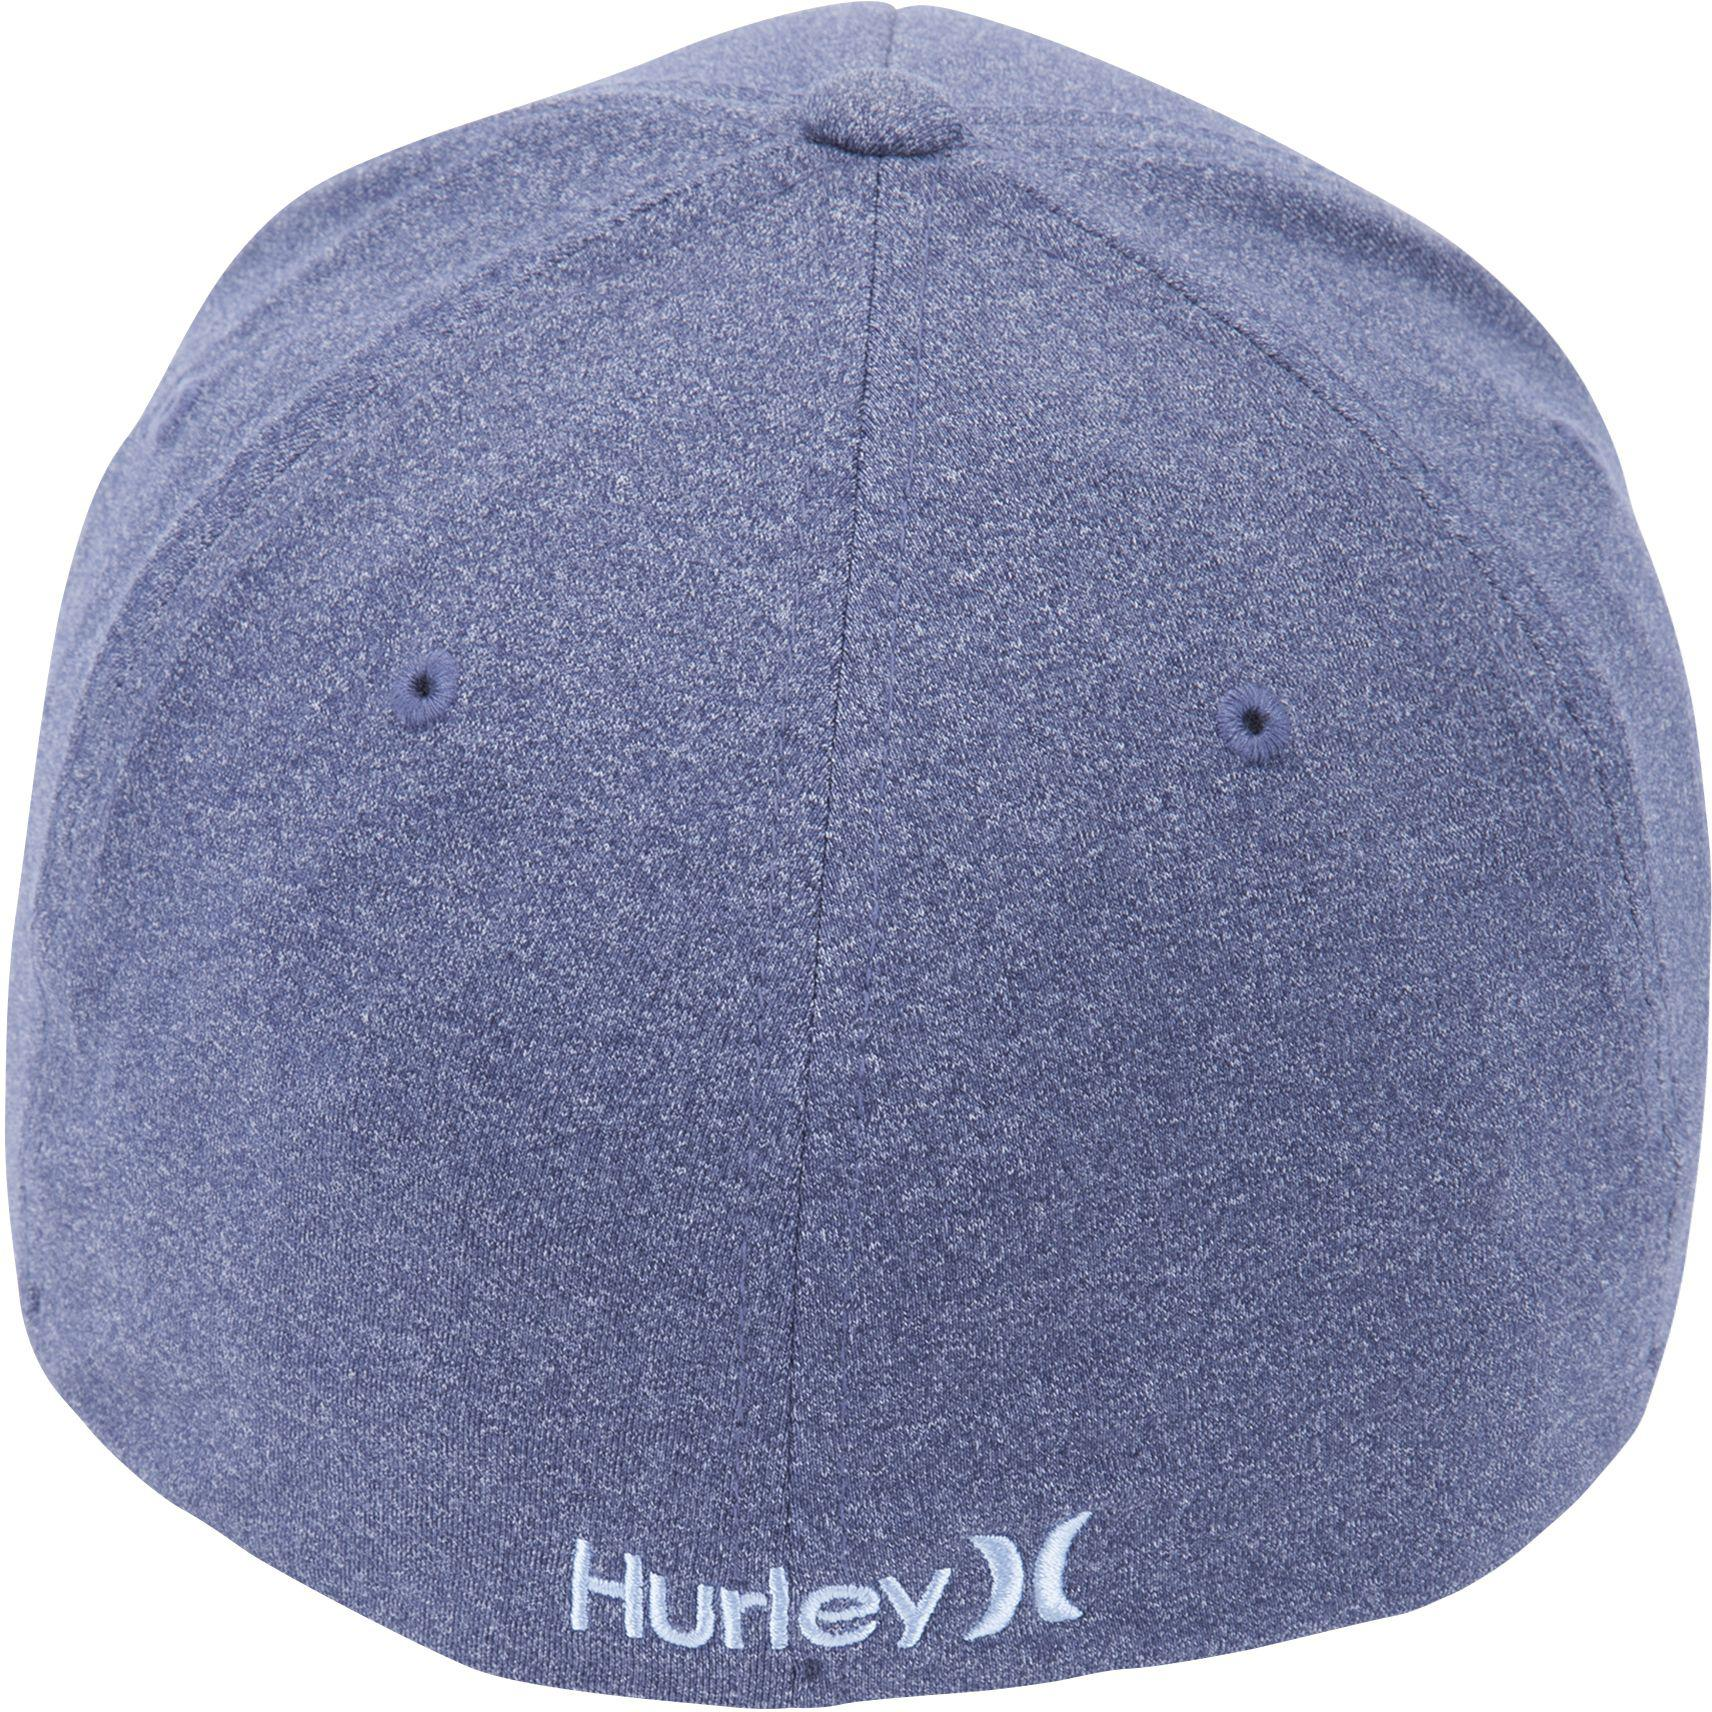 51692f0d4b1 Lyst - Hurley One And Textures Hat in Blue for Men